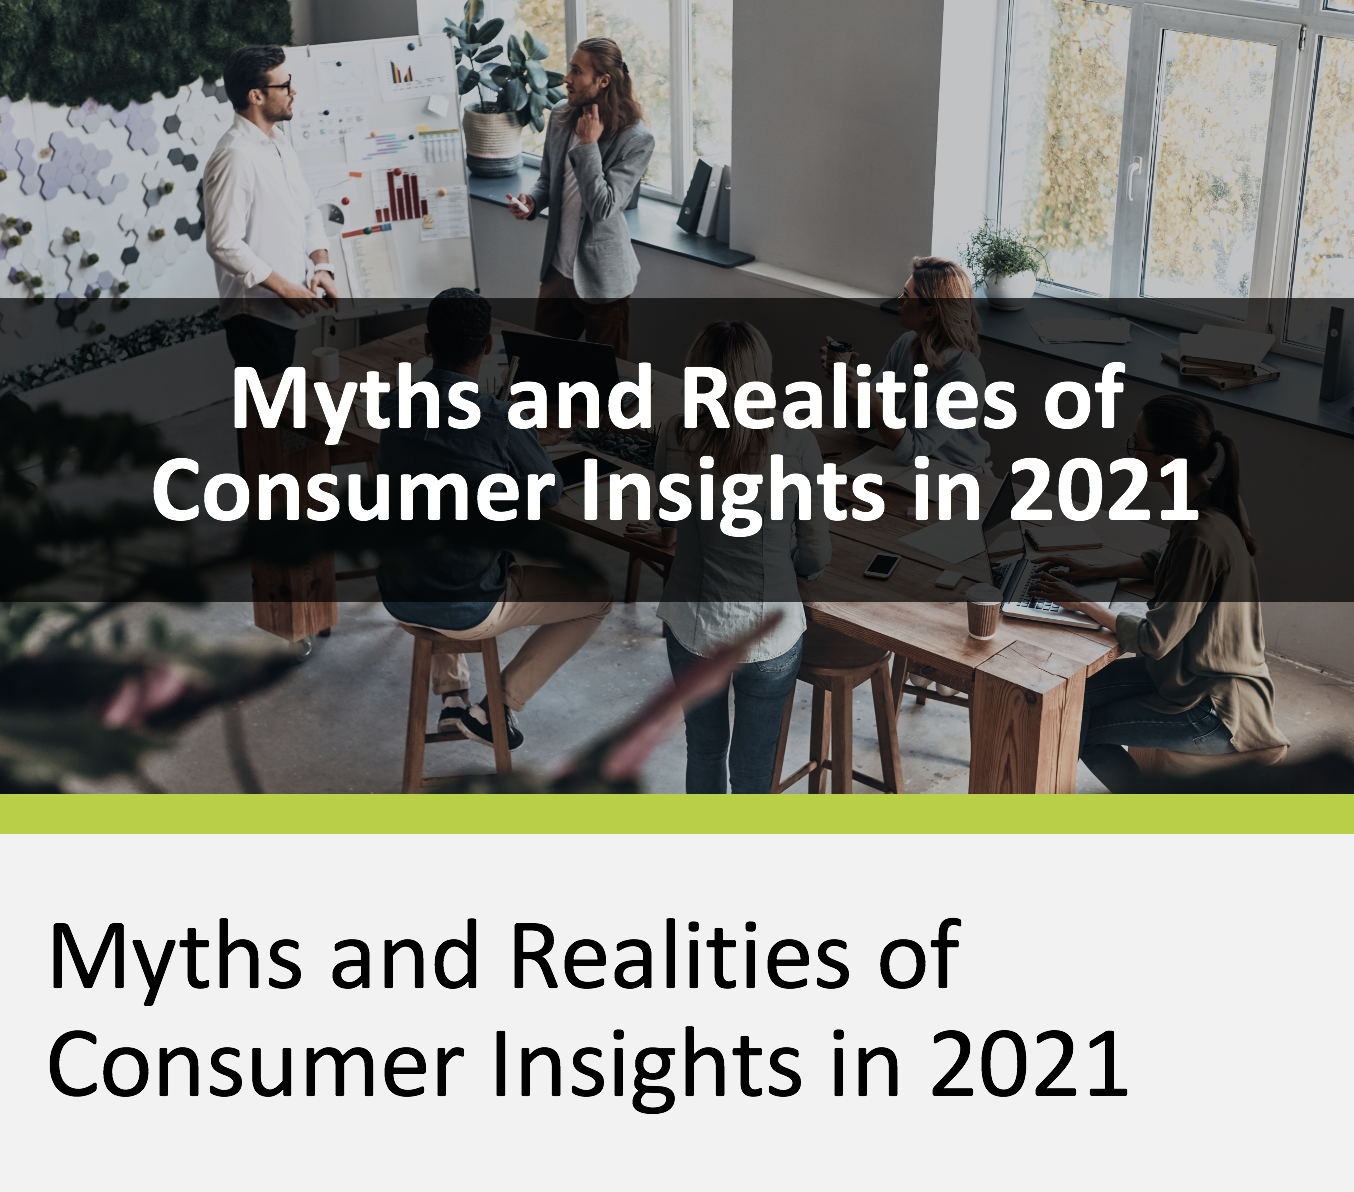 Myths and Realities of Consumer Insights in 2021